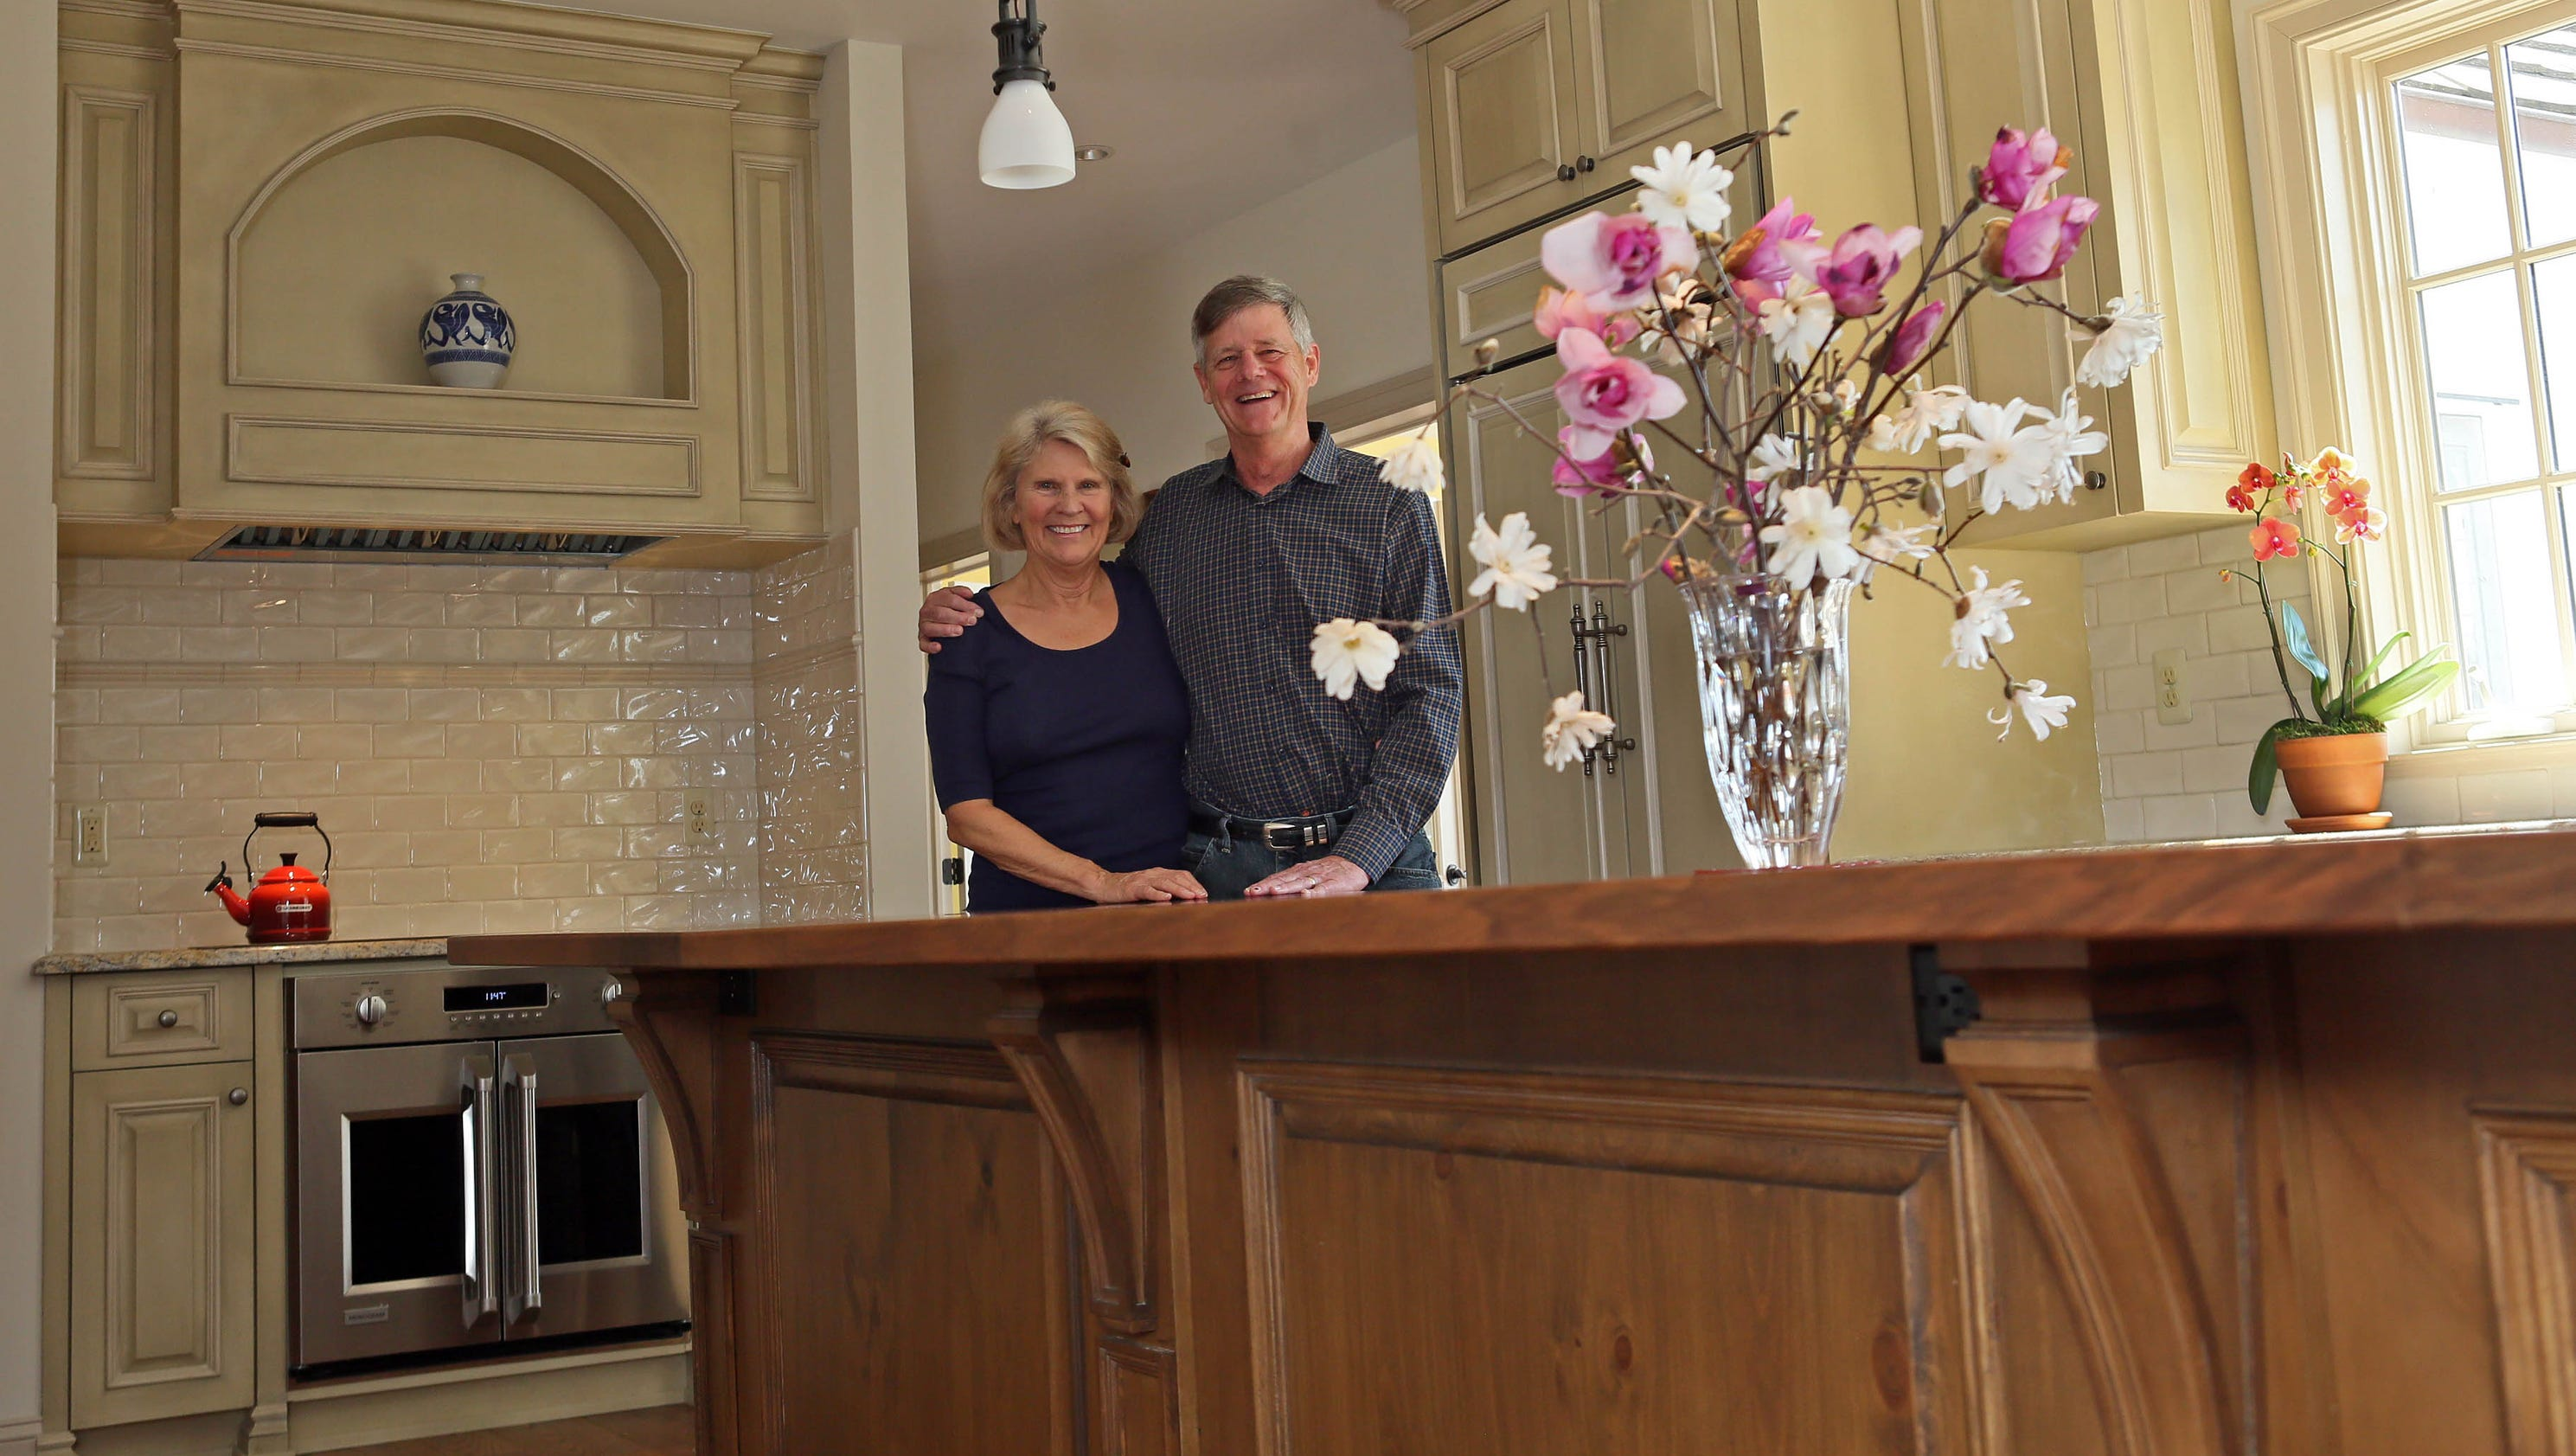 Heart Of The Home Kitchen Tour Delaware